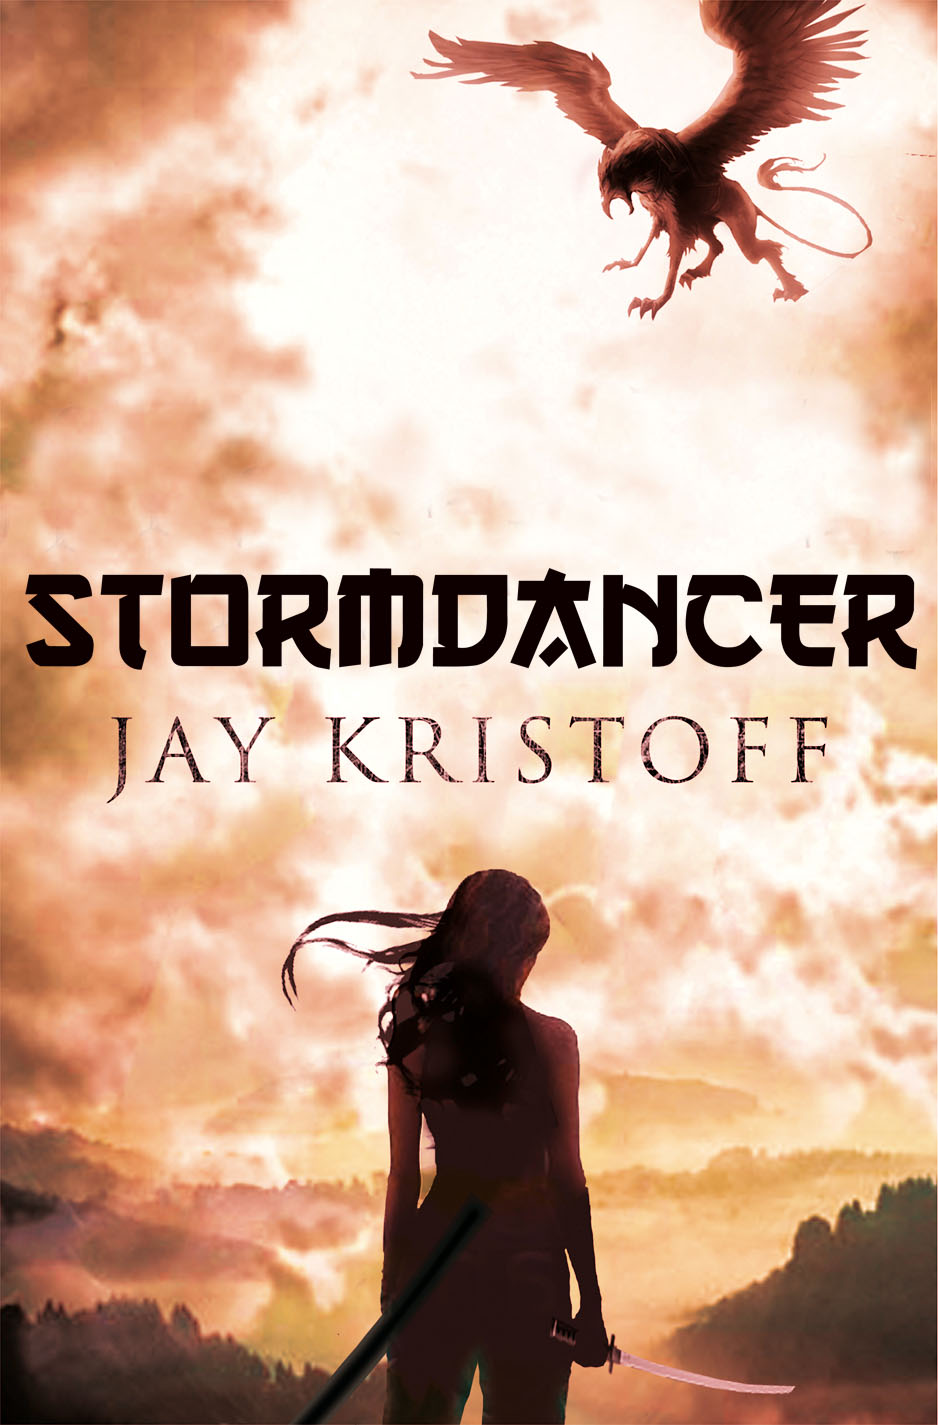 Stormdancer cover process